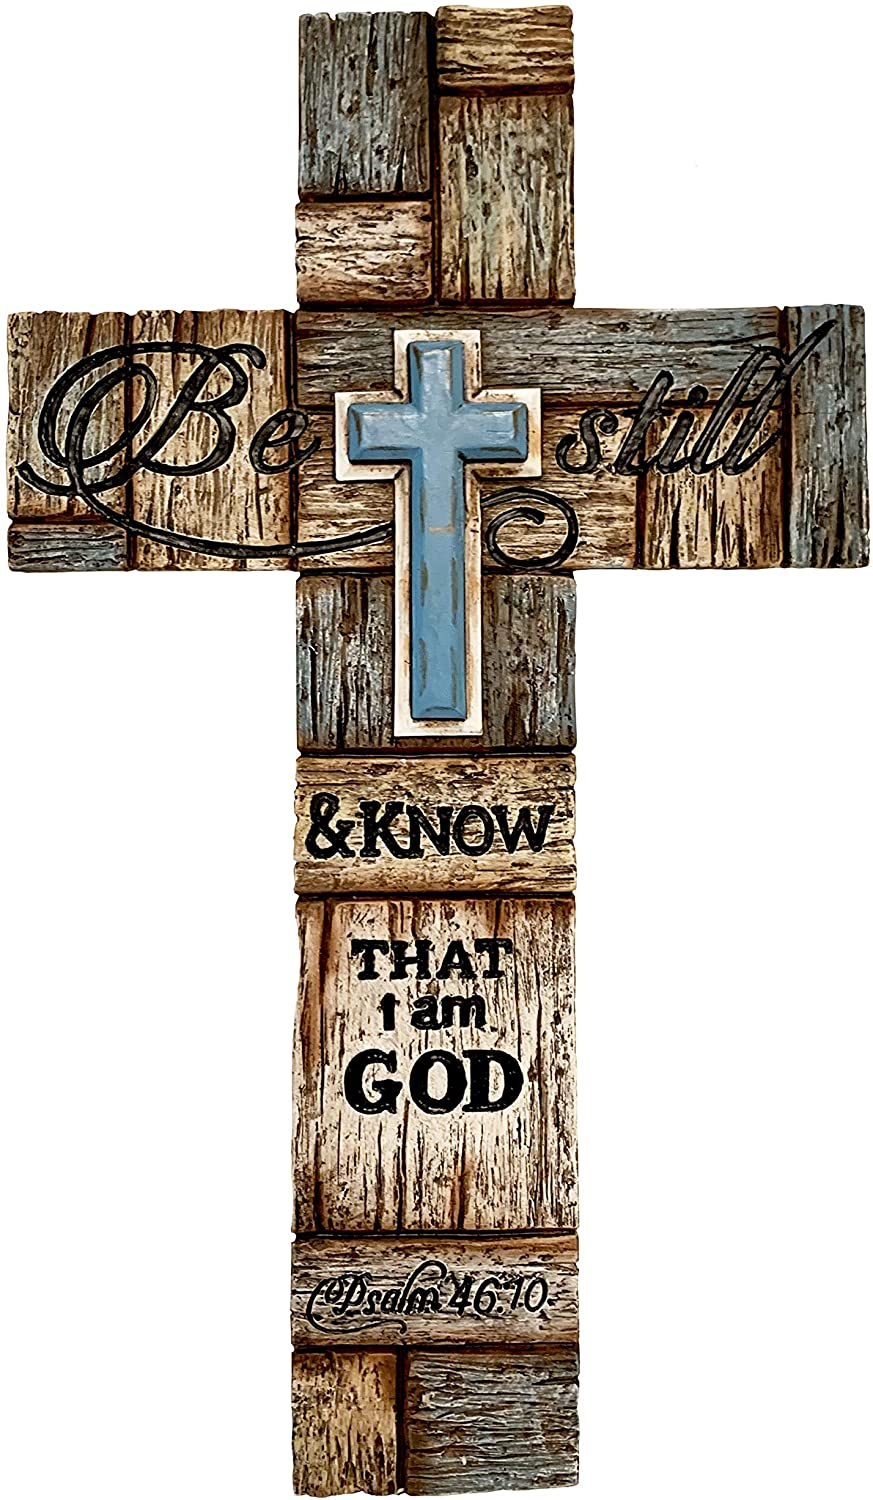 Inspirational Layered Wall Cross, Realistic Wood Texture - Be Still & Know That I am God - Psalm 46:10